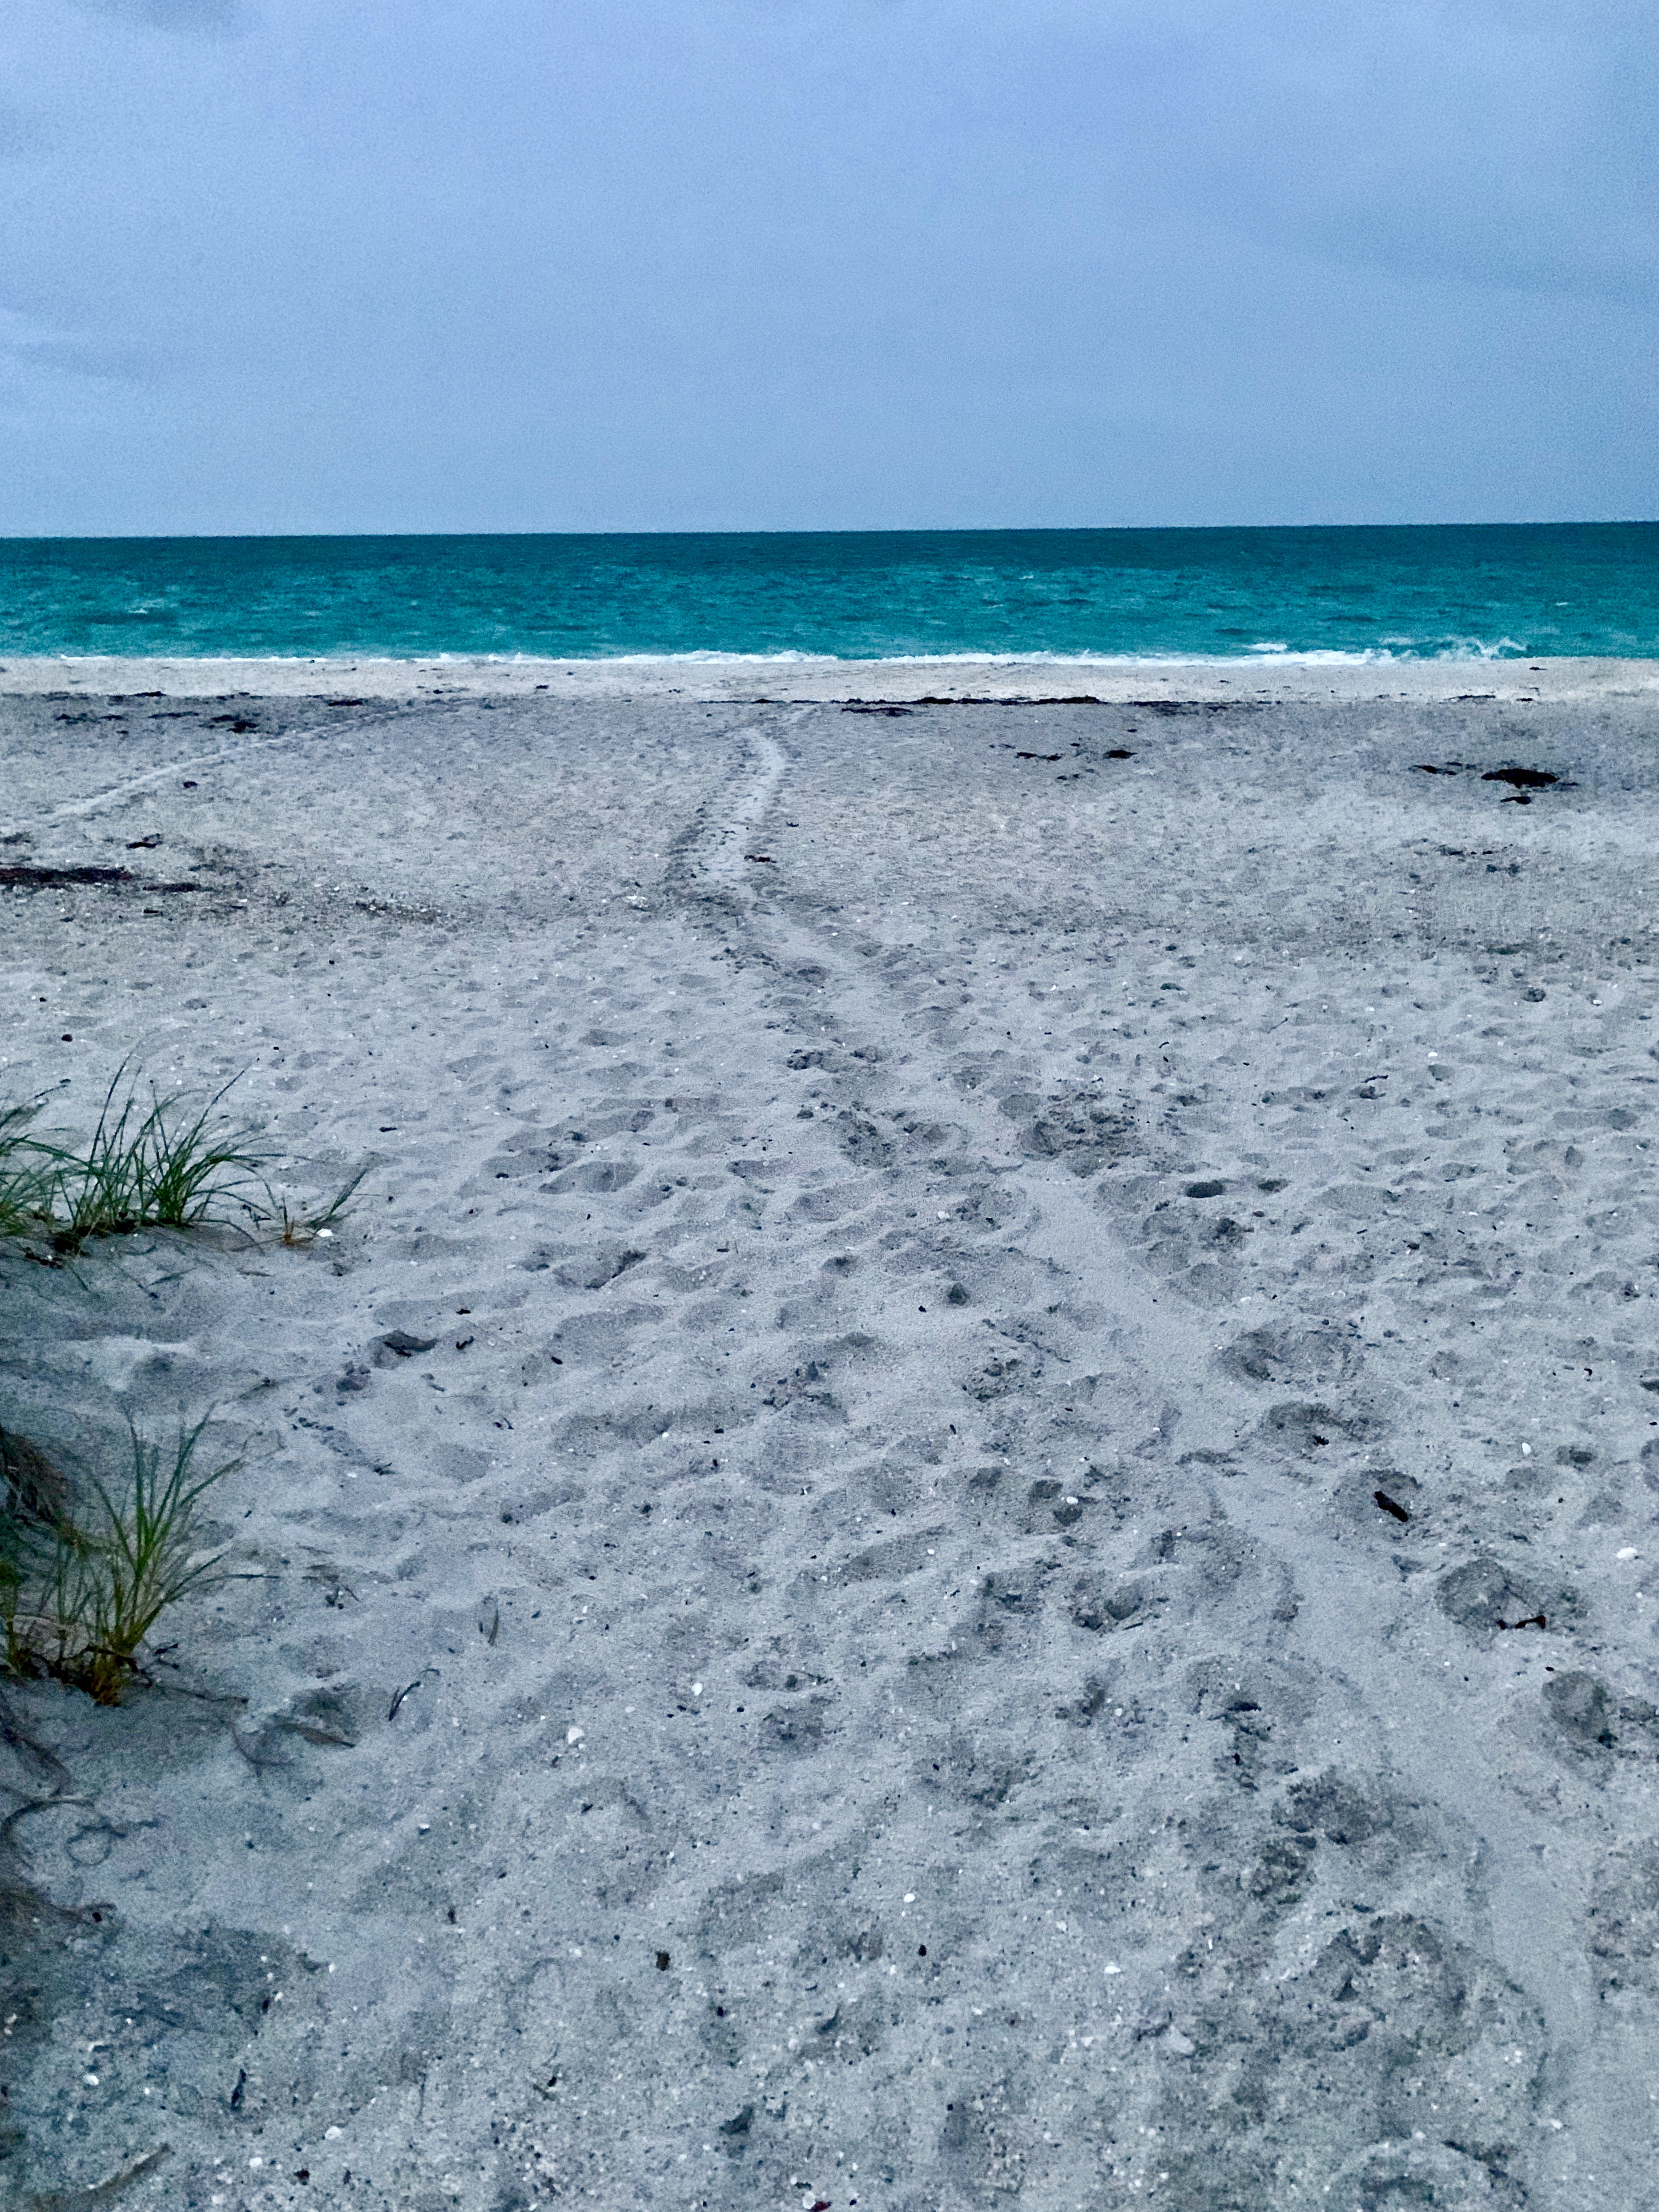 Finding turtle nesting tracks Stump Pass Beach. Photo by AY.